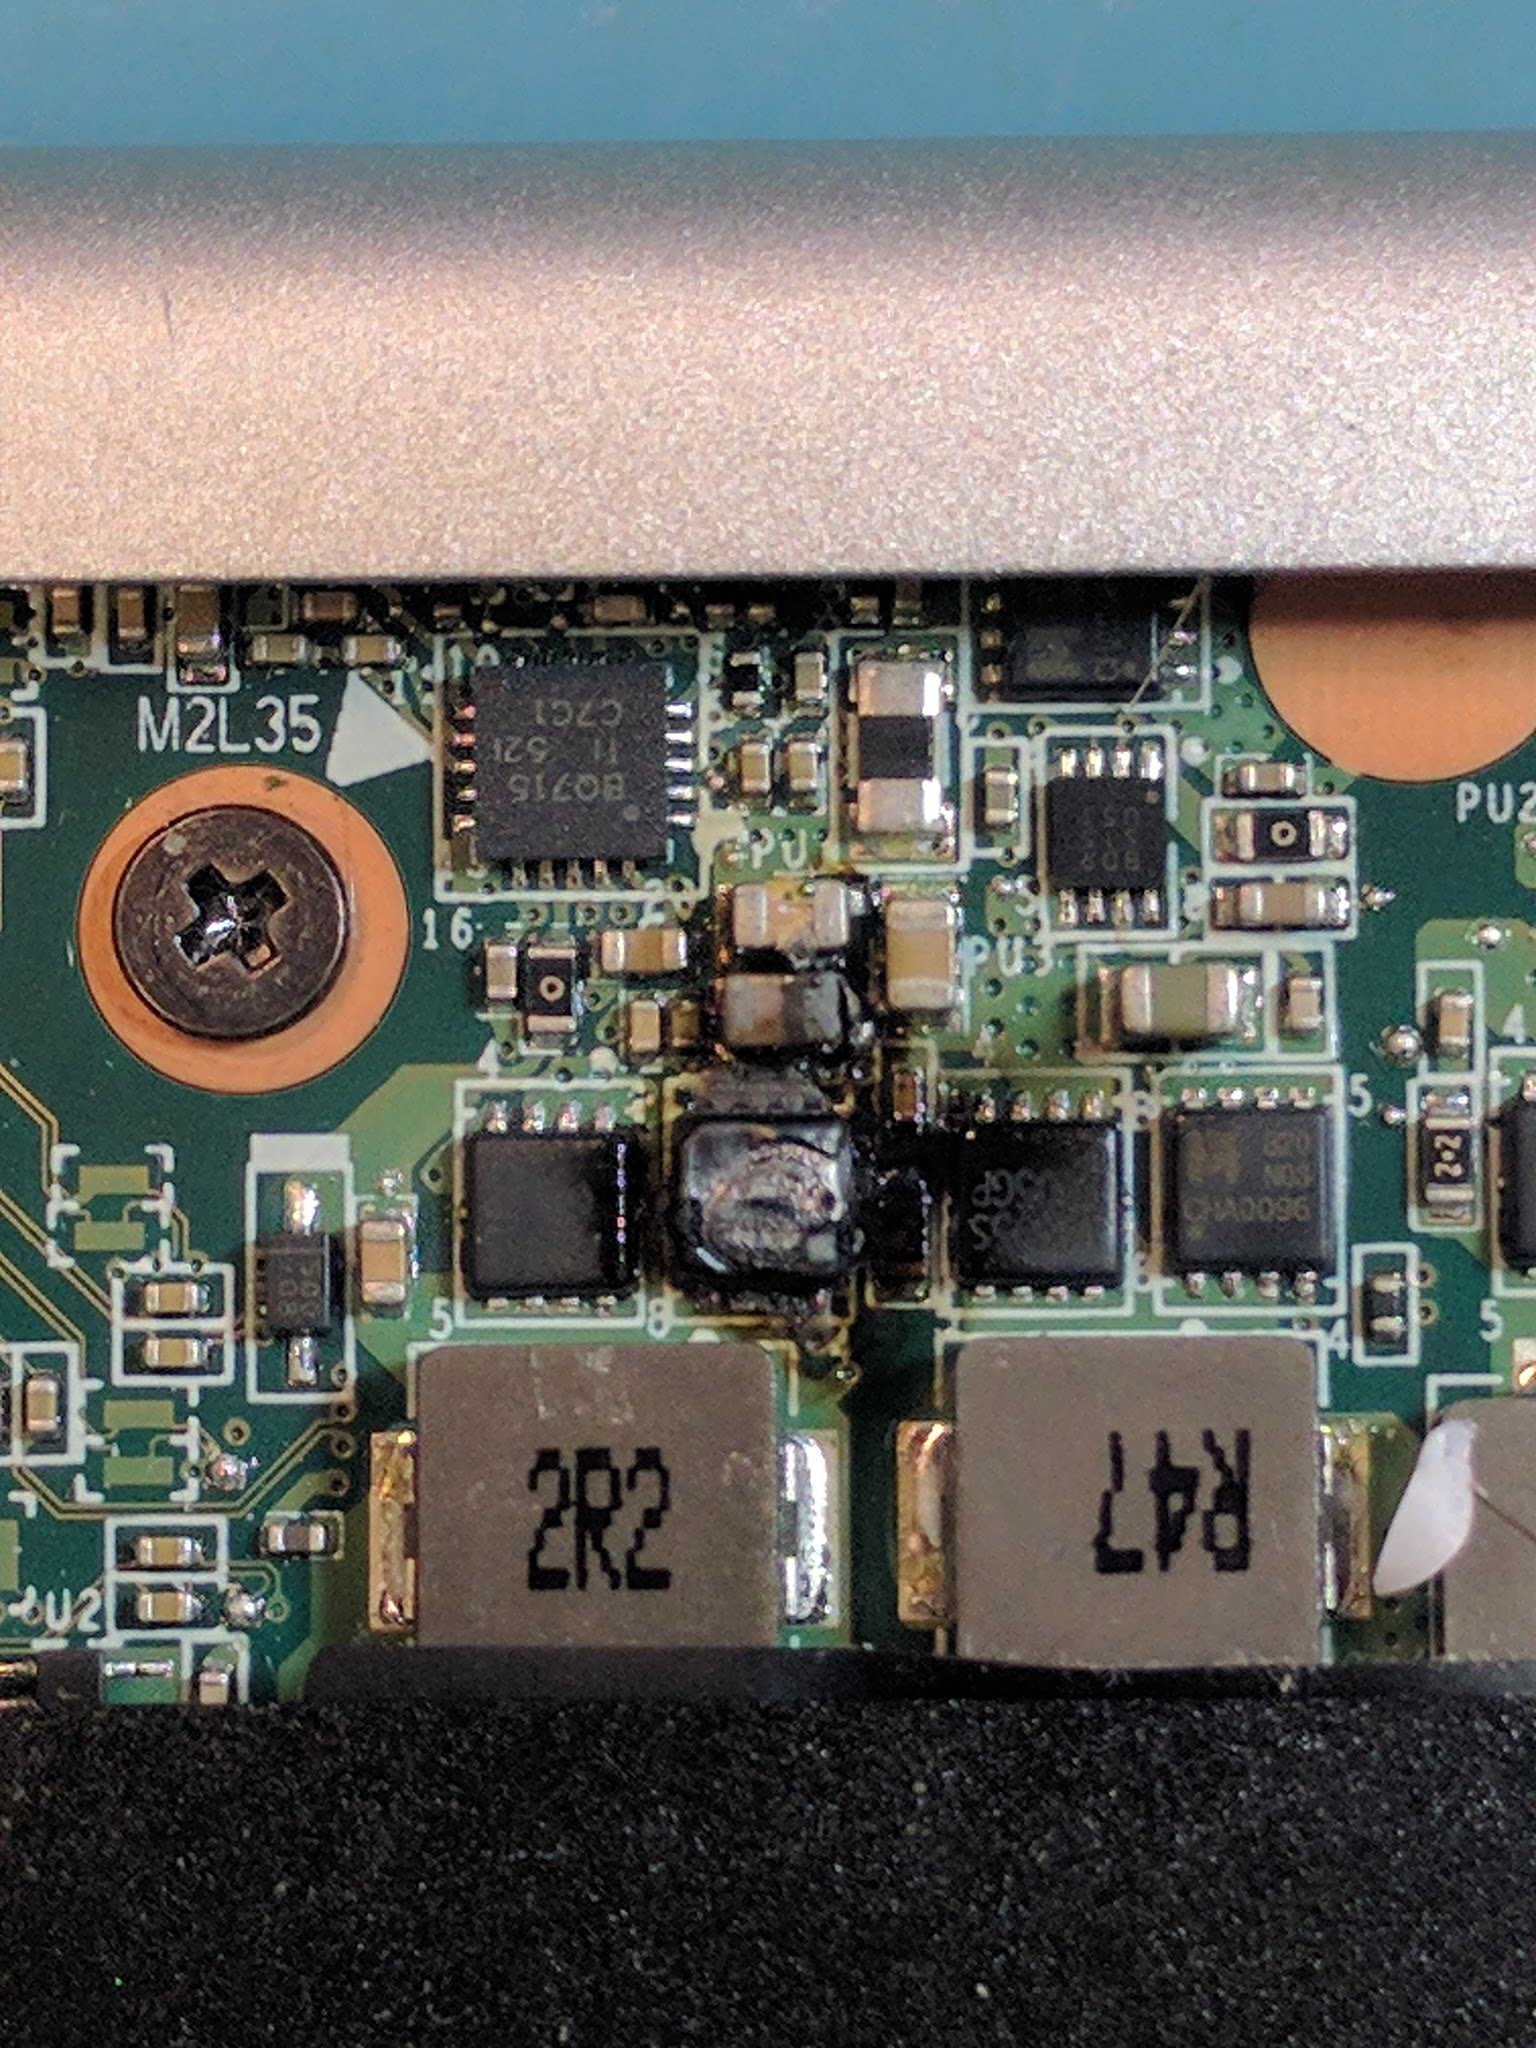 Hp Spectre X360 Motherboard Failure Support Community 6089583 Messages For Friends Images Diagram Of A With Labels